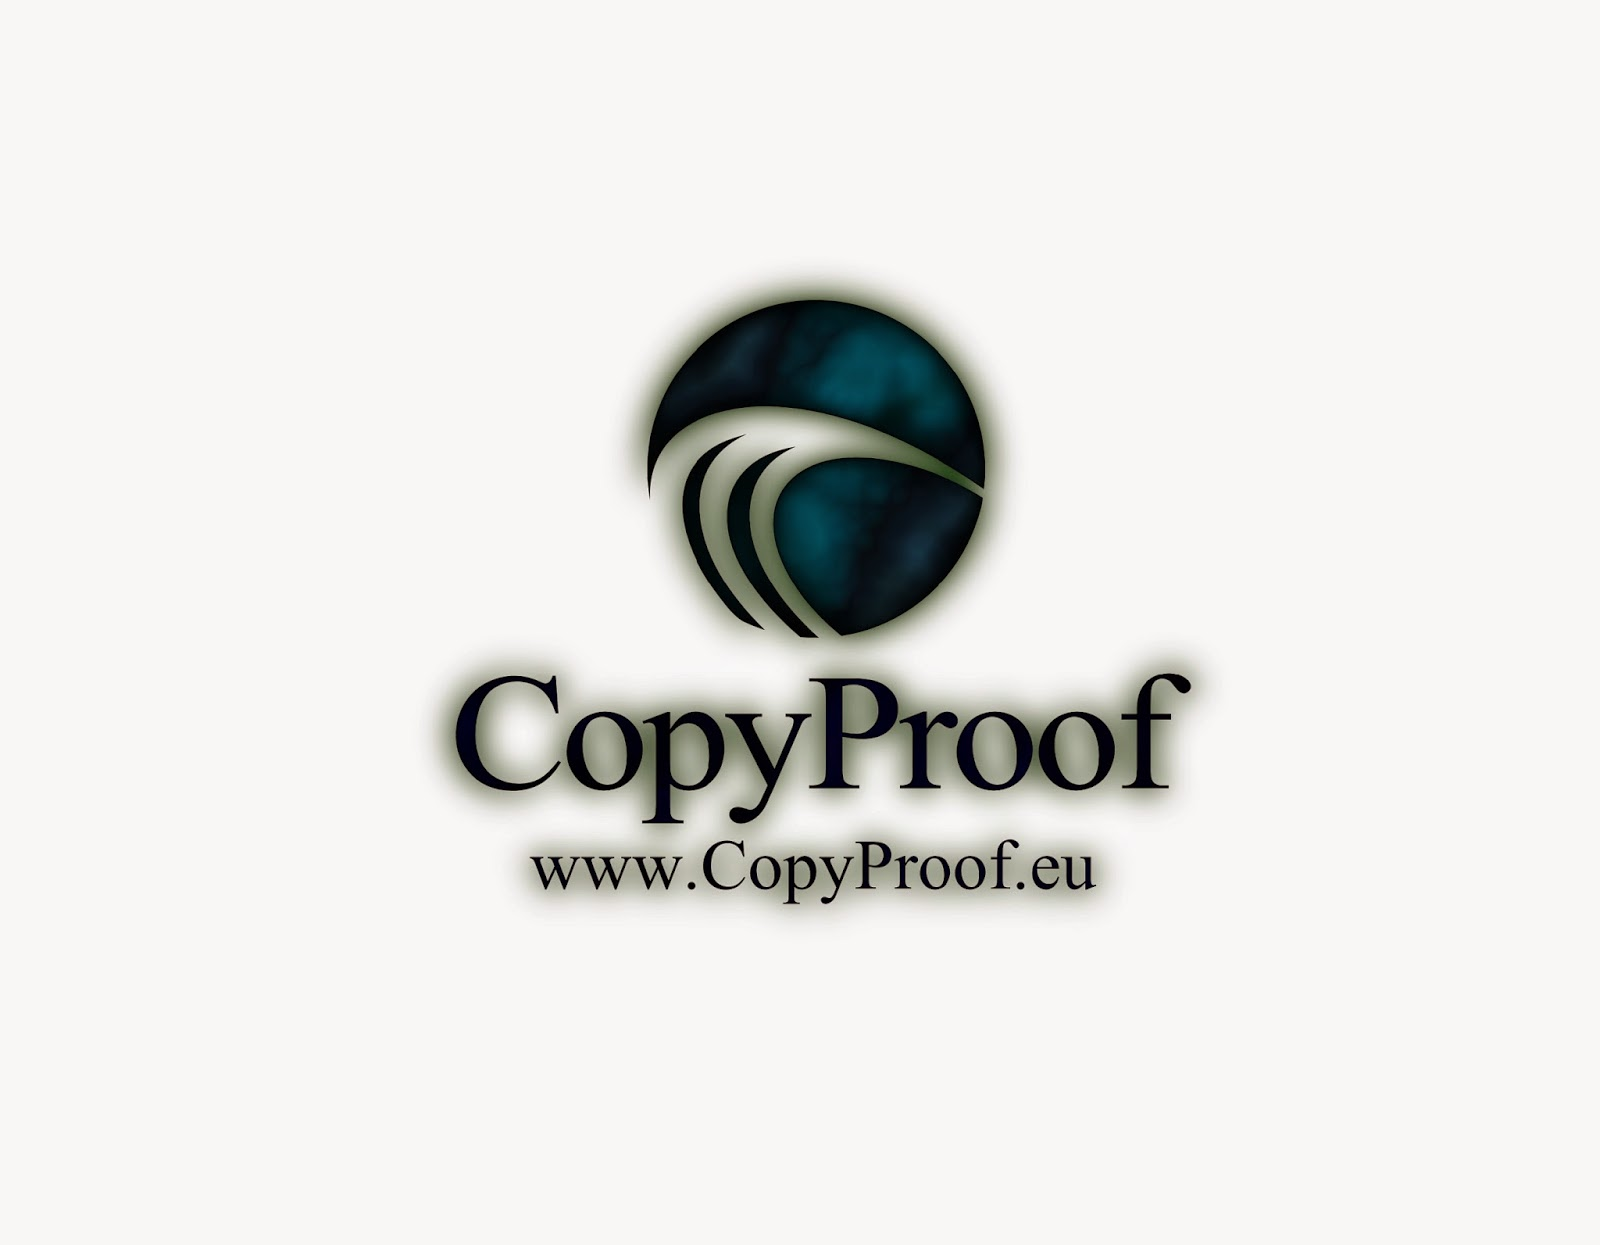 Anti-Copy Security Paper including Copy Proof Paper, Copy Resistant Paper, Void Paper, Secure Paper, Security Paper, Tamper Proof Paper.